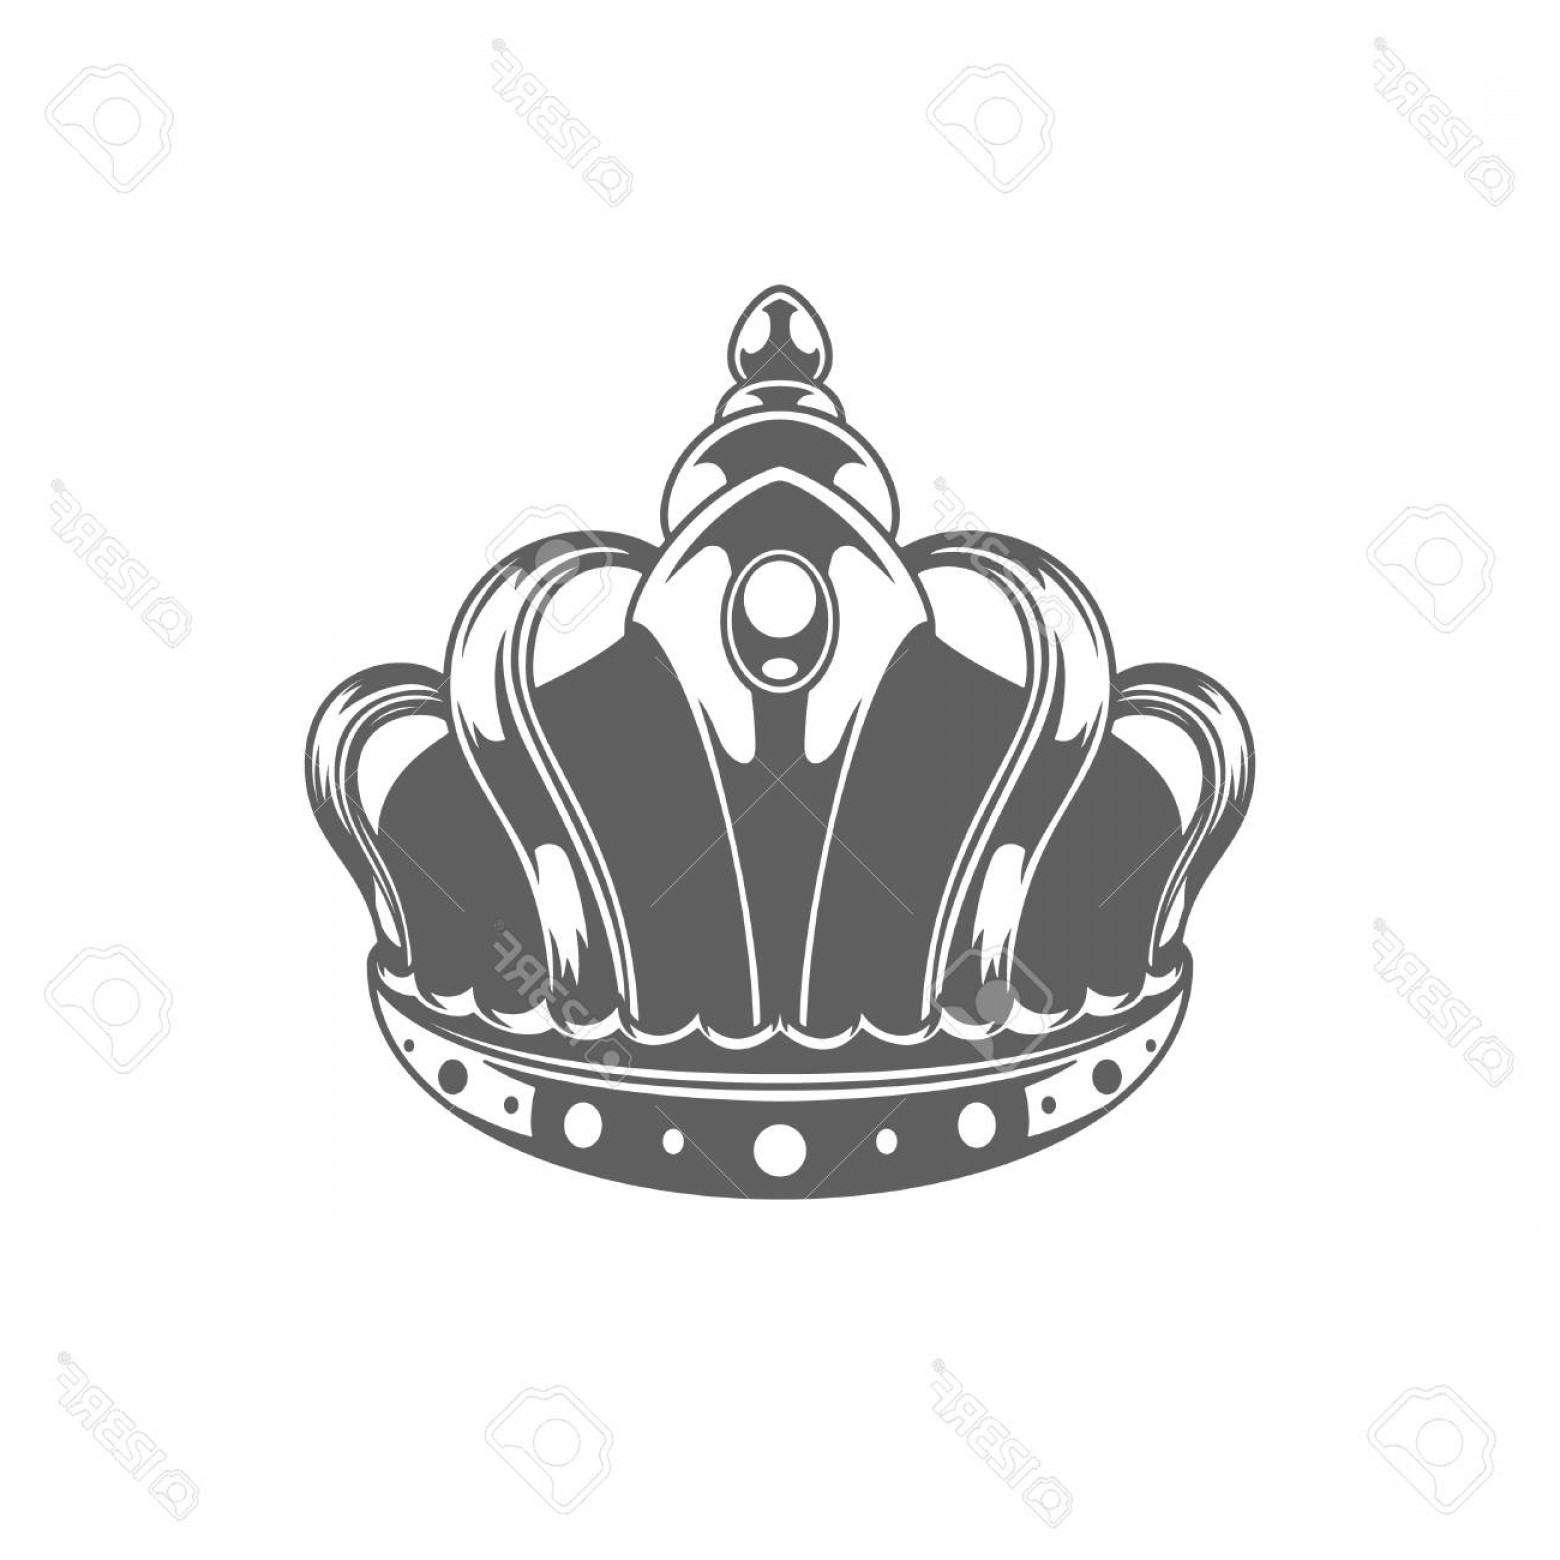 Crown White Outline Vector: Photostock Vector King Crown Logo Vector Illustration Royal Crown Silhouette Isolated On White Background Vector Objec